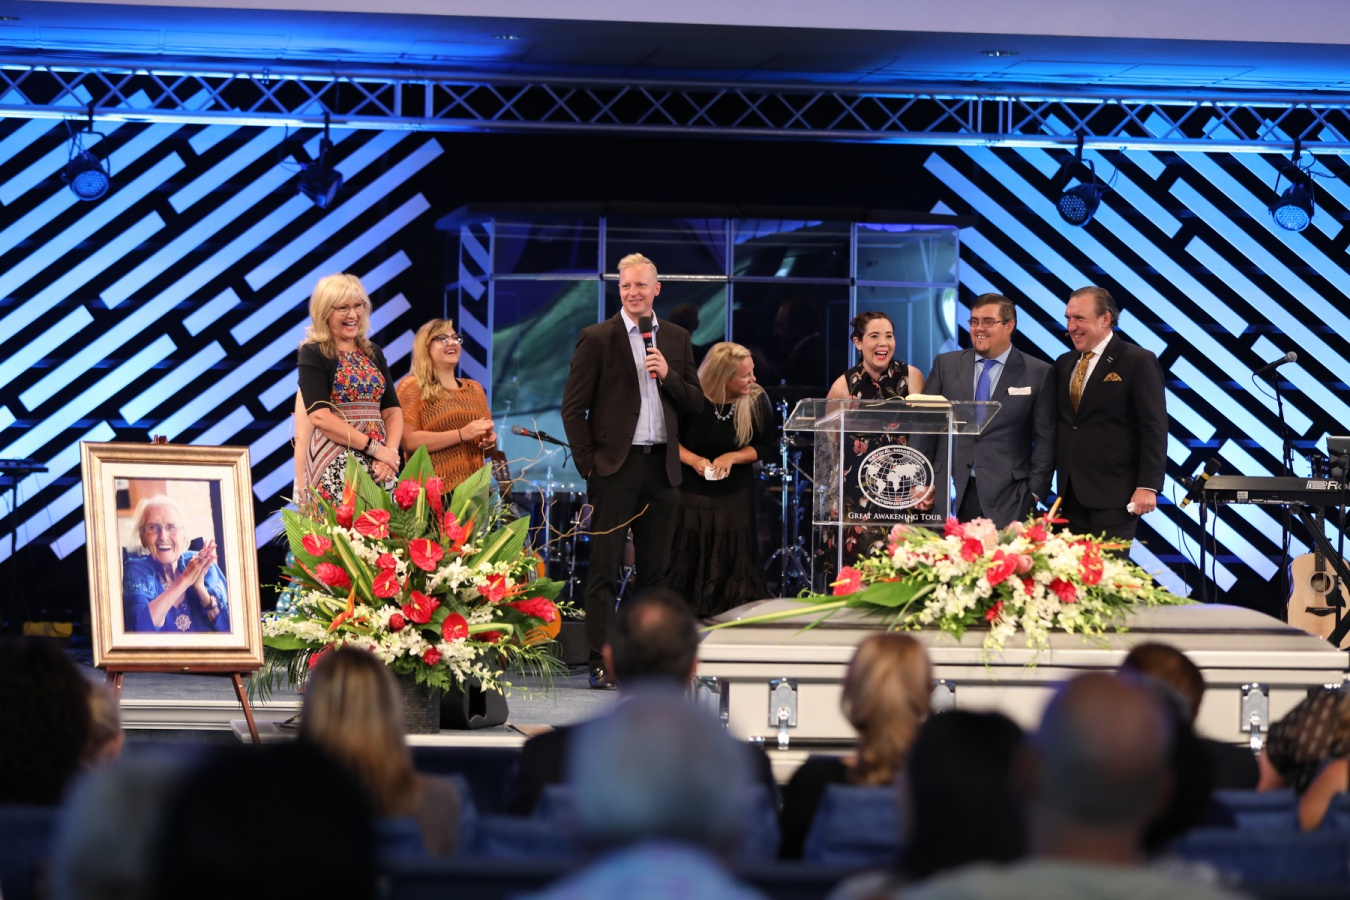 A Celebration of Life for Pastor Lorna Howard-Browne